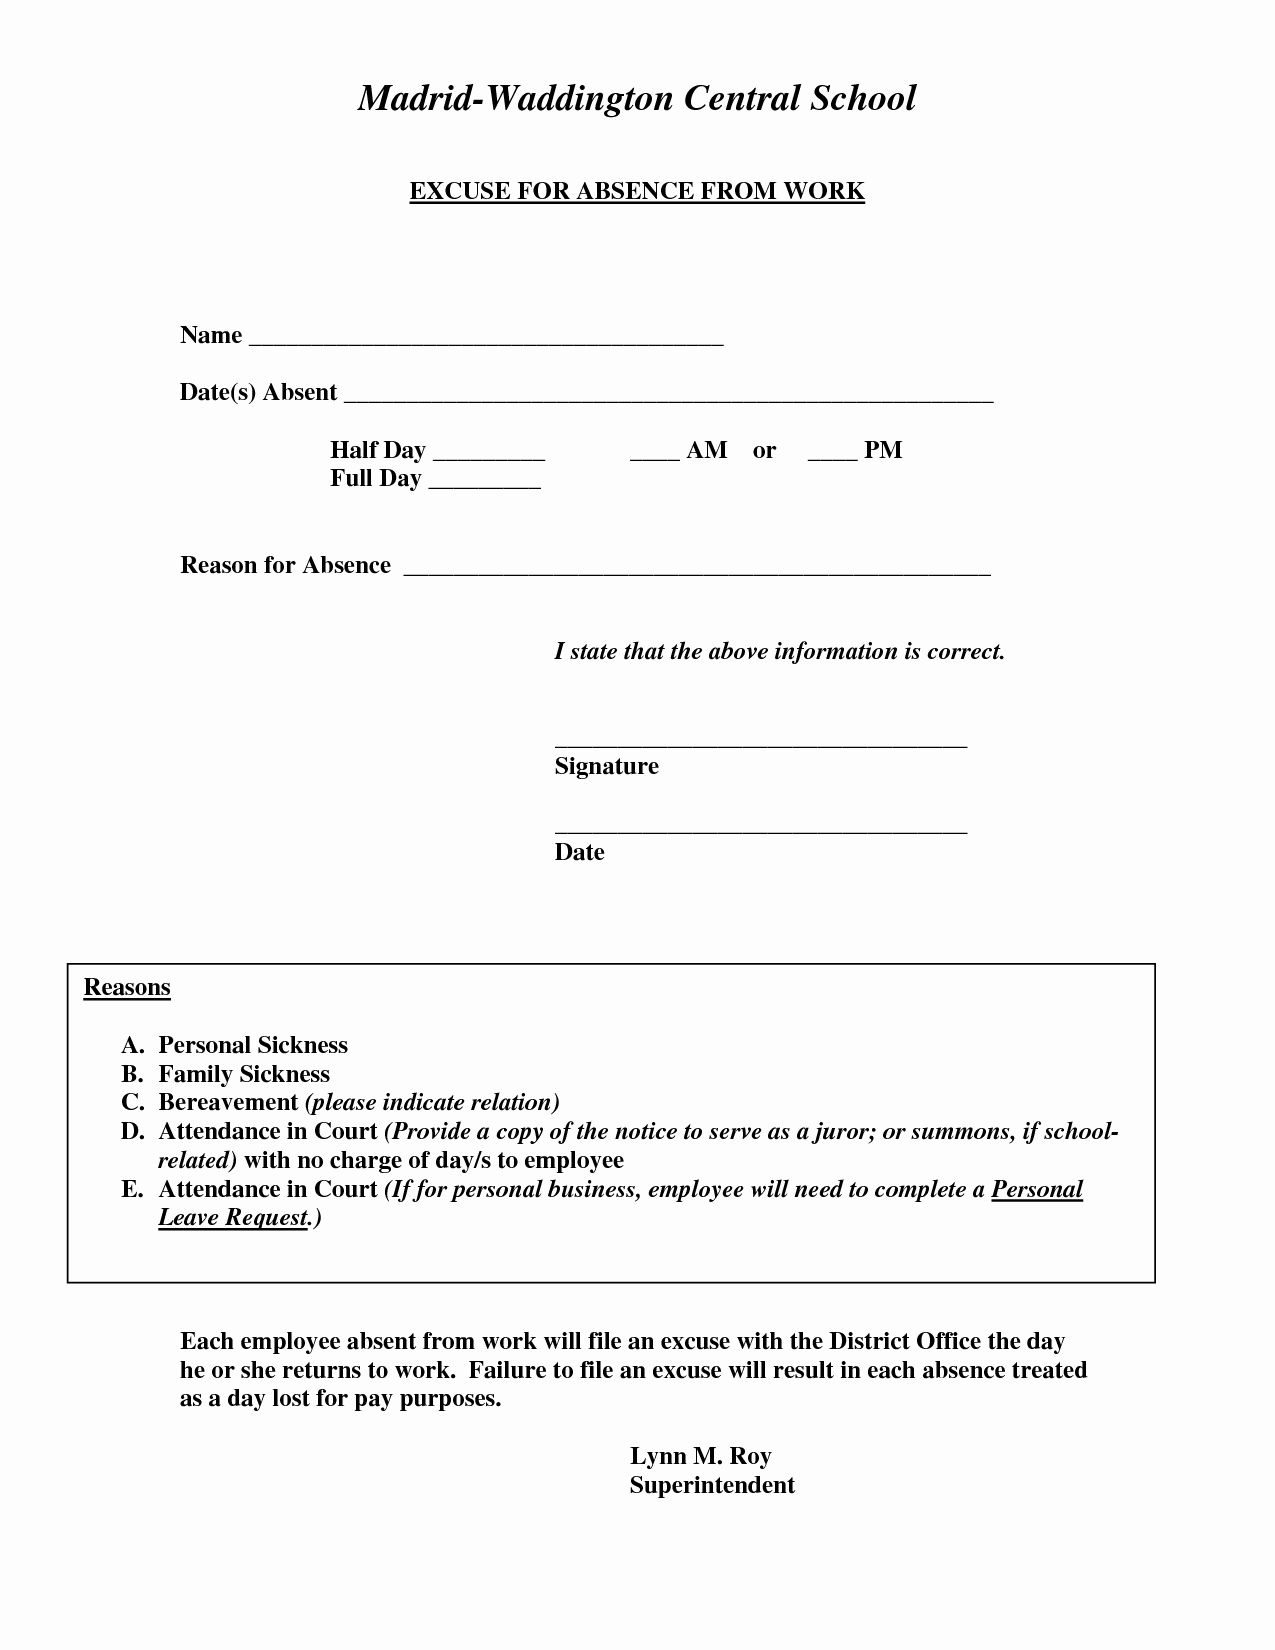 Doctors Excuse Note For Work Pdf